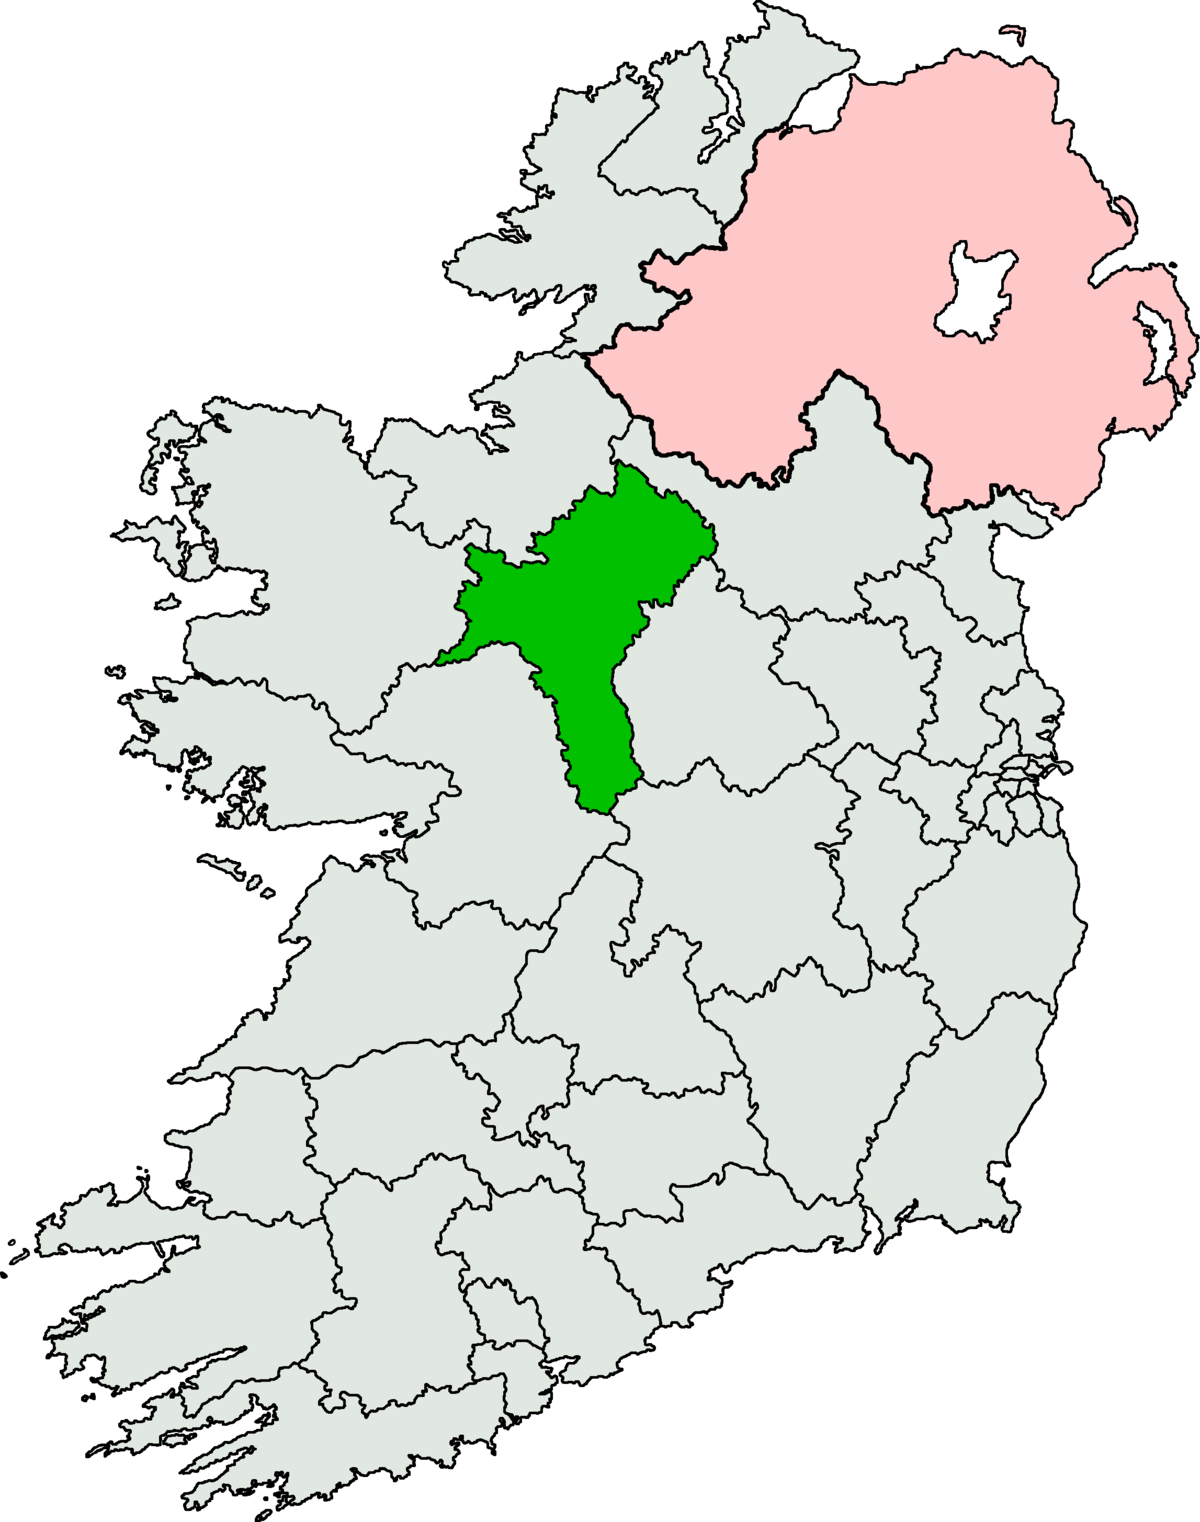 RoscommonSouth Leitrim Byelection Wikipedia - Map of the us without states labeled